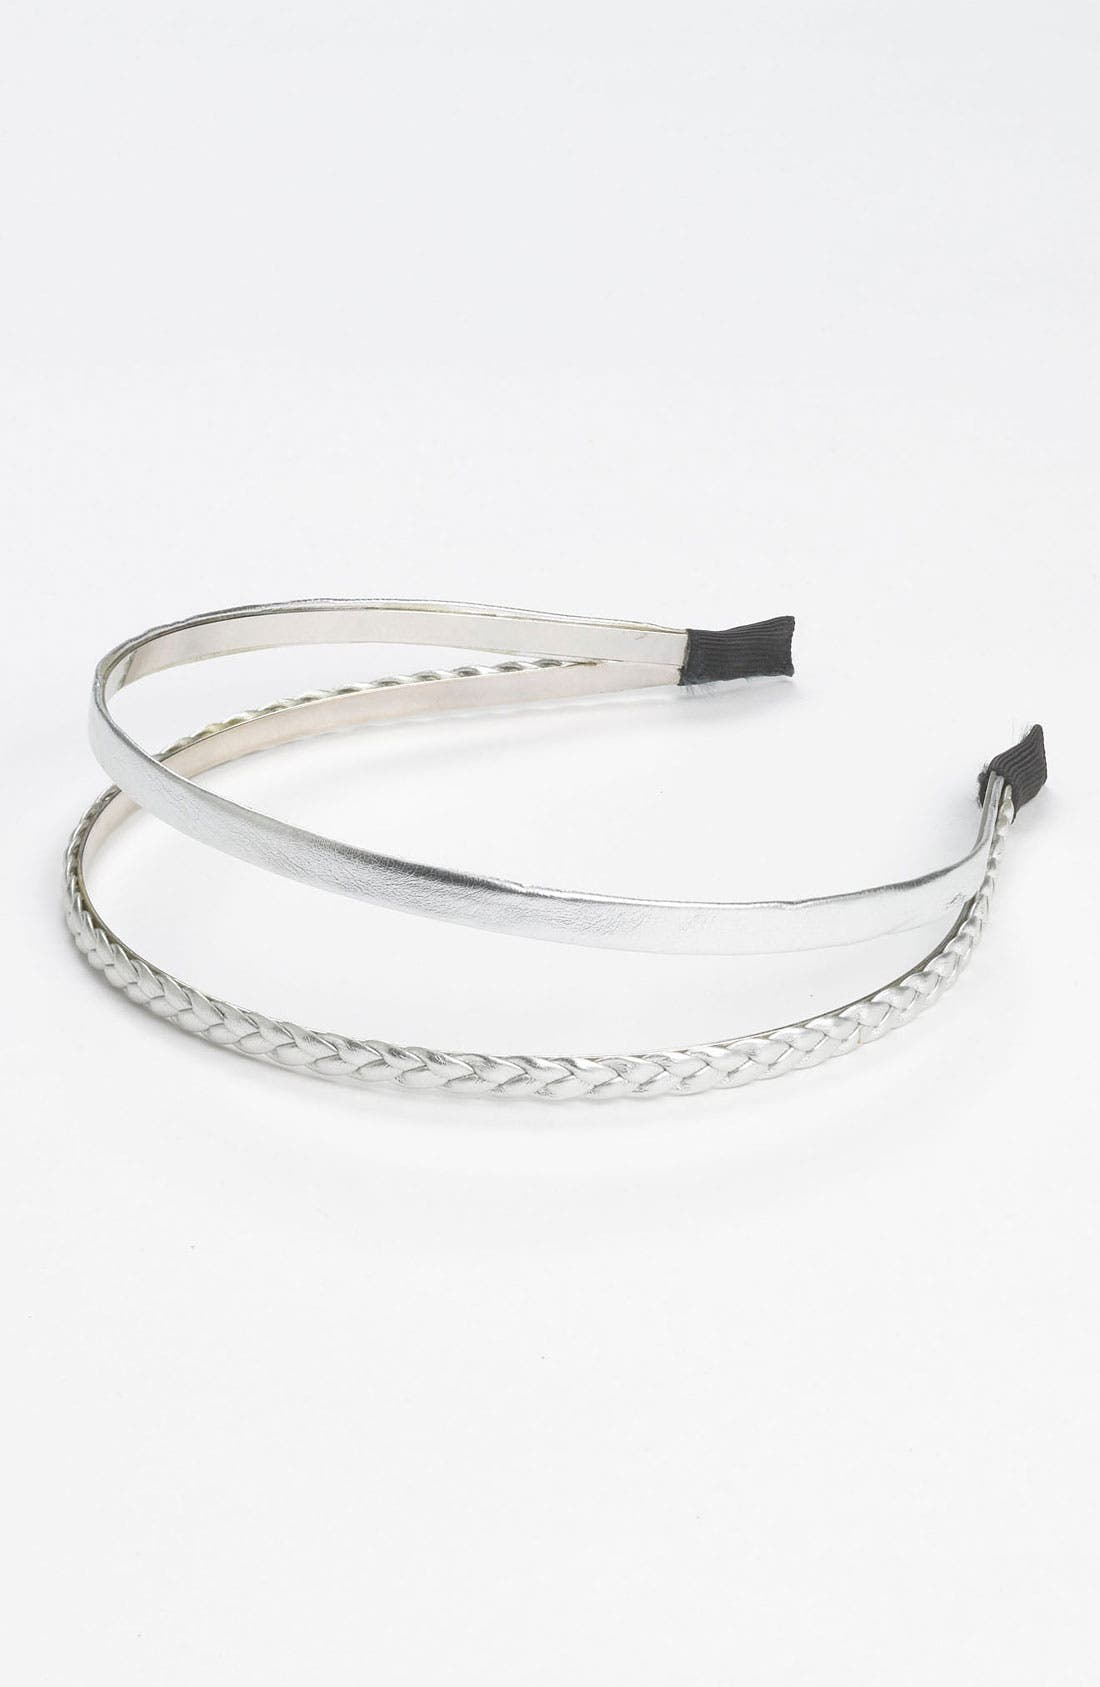 Alternate Image 1 Selected - Fantasia Accessories Metallic Double Headband (Girls)